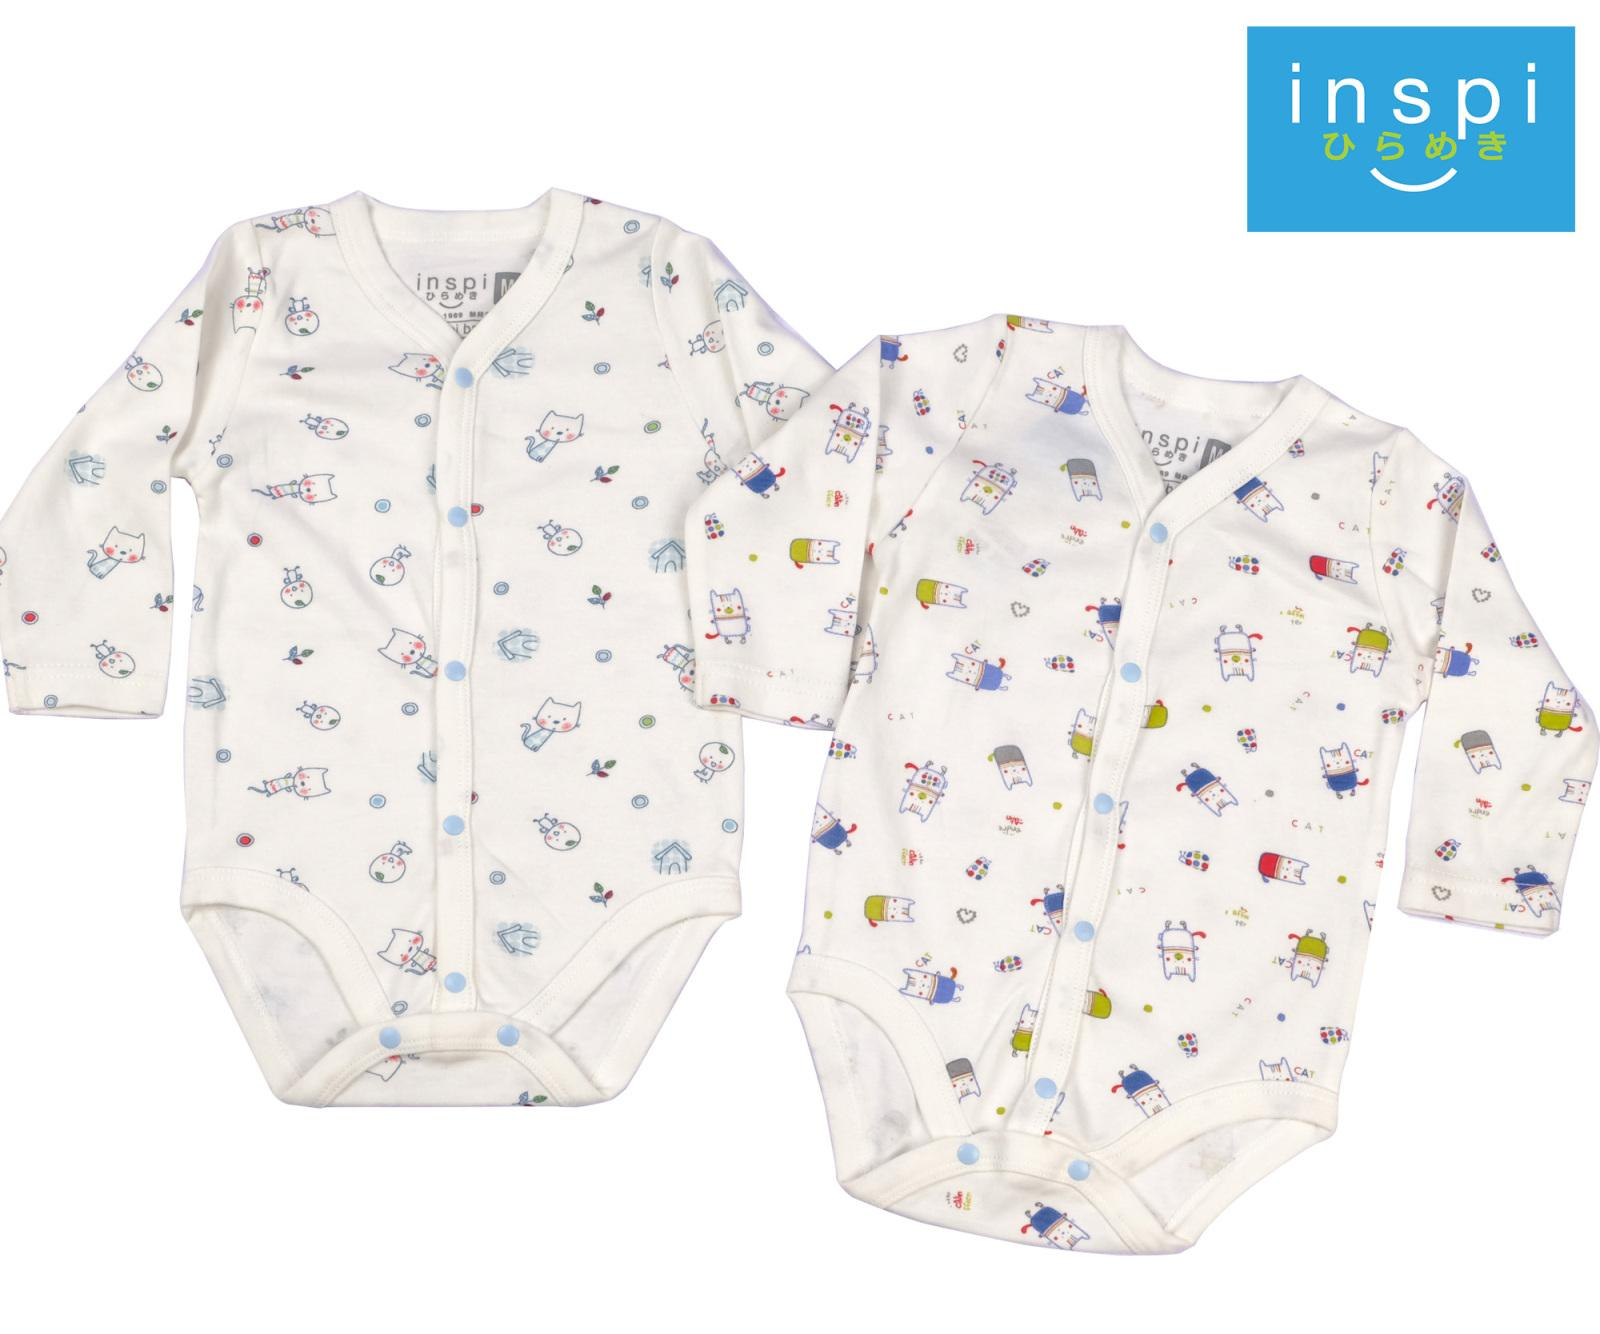 Newborn clothes for sale newborn baby clothes online brands inspi babies 100 cotton onesies long sleeve with button white newborn infant quality jeuxipadfo Image collections